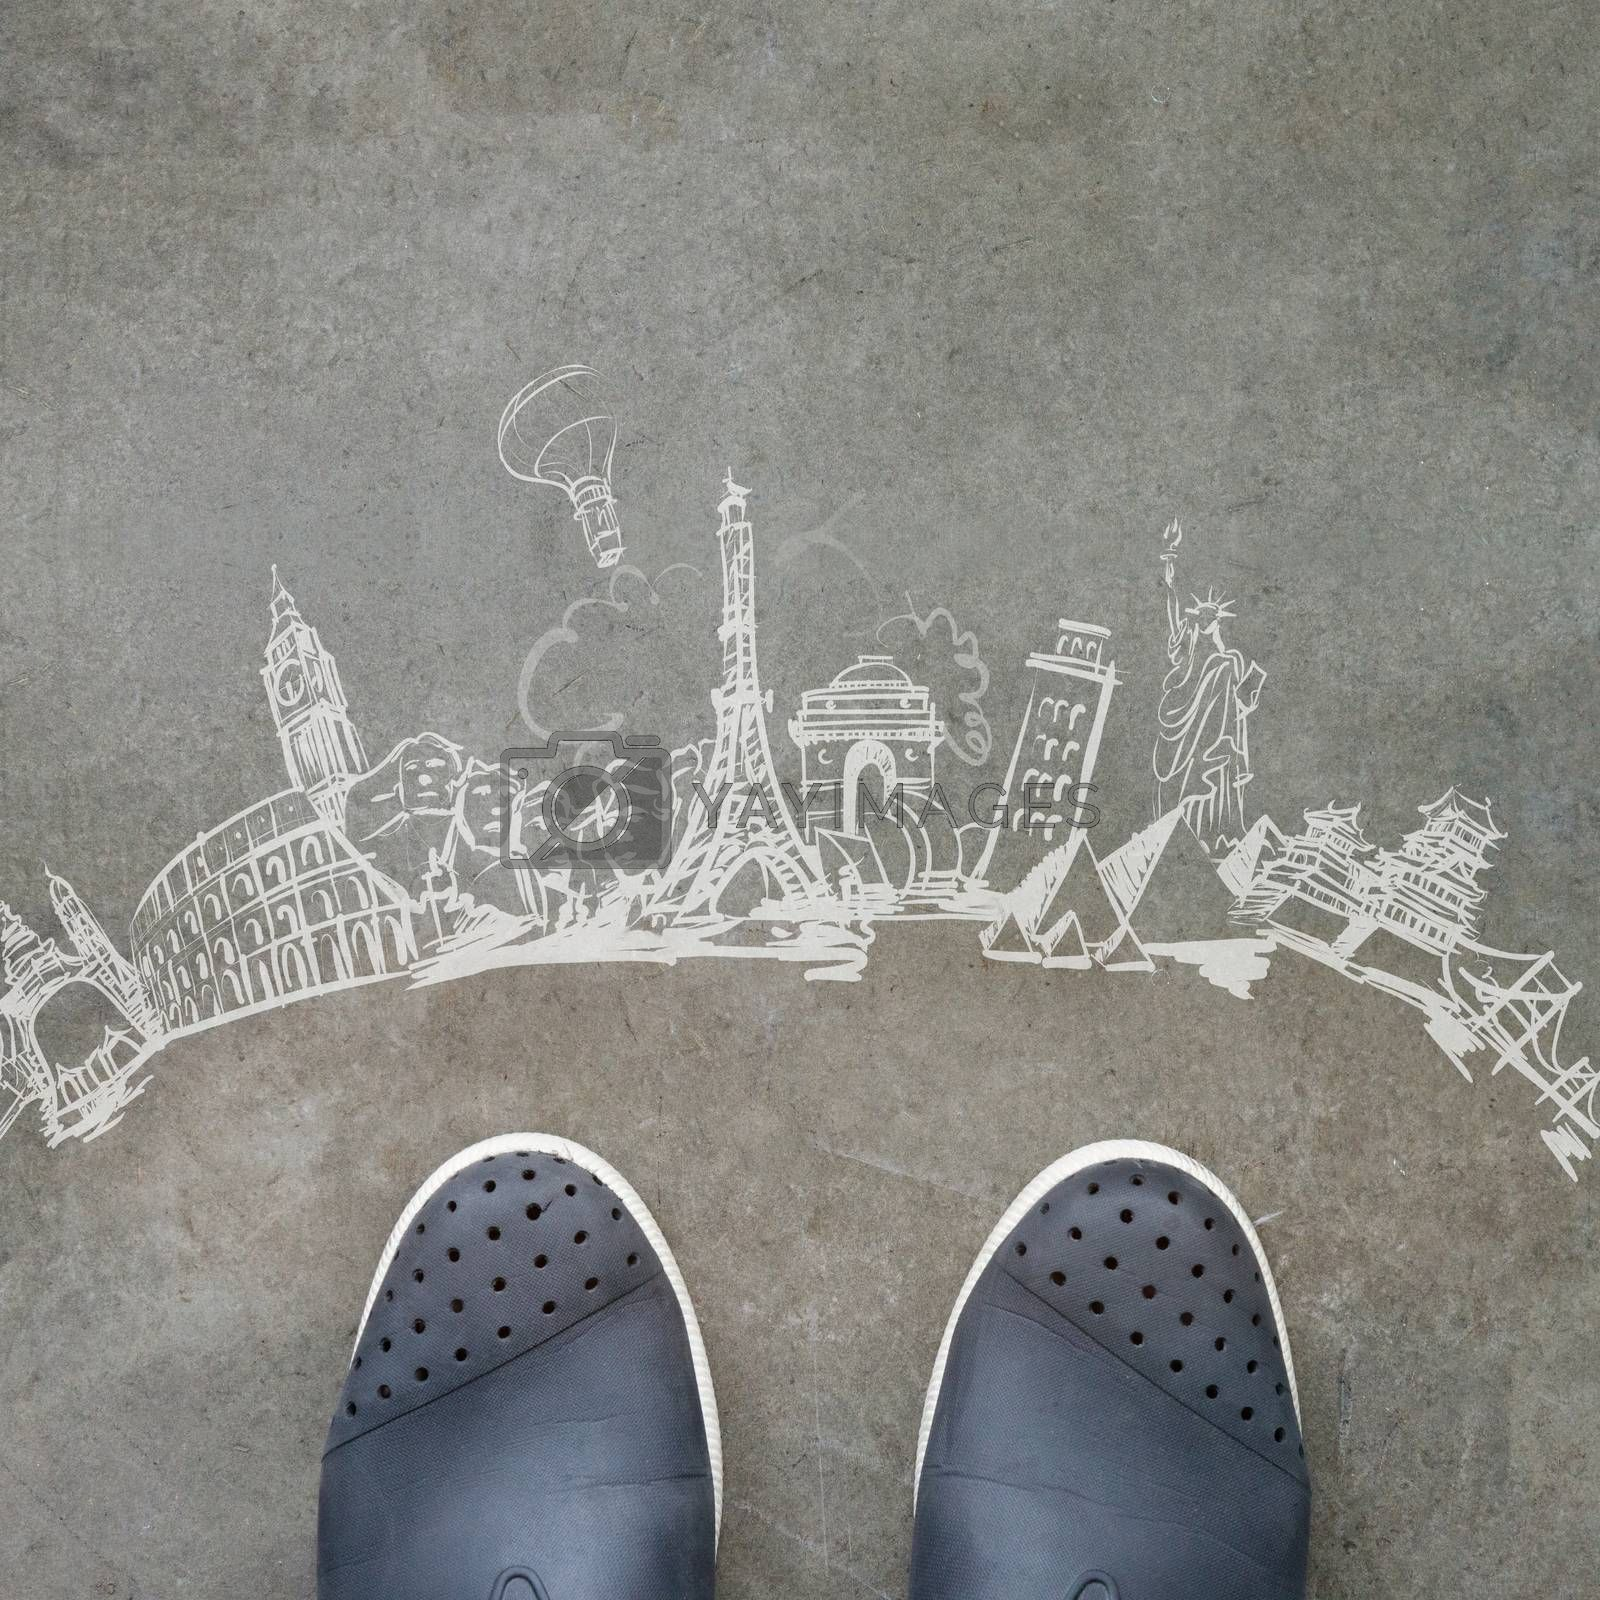 Royalty free image of hand drawn traveling around the world on wooden background as vi by everythingpossible